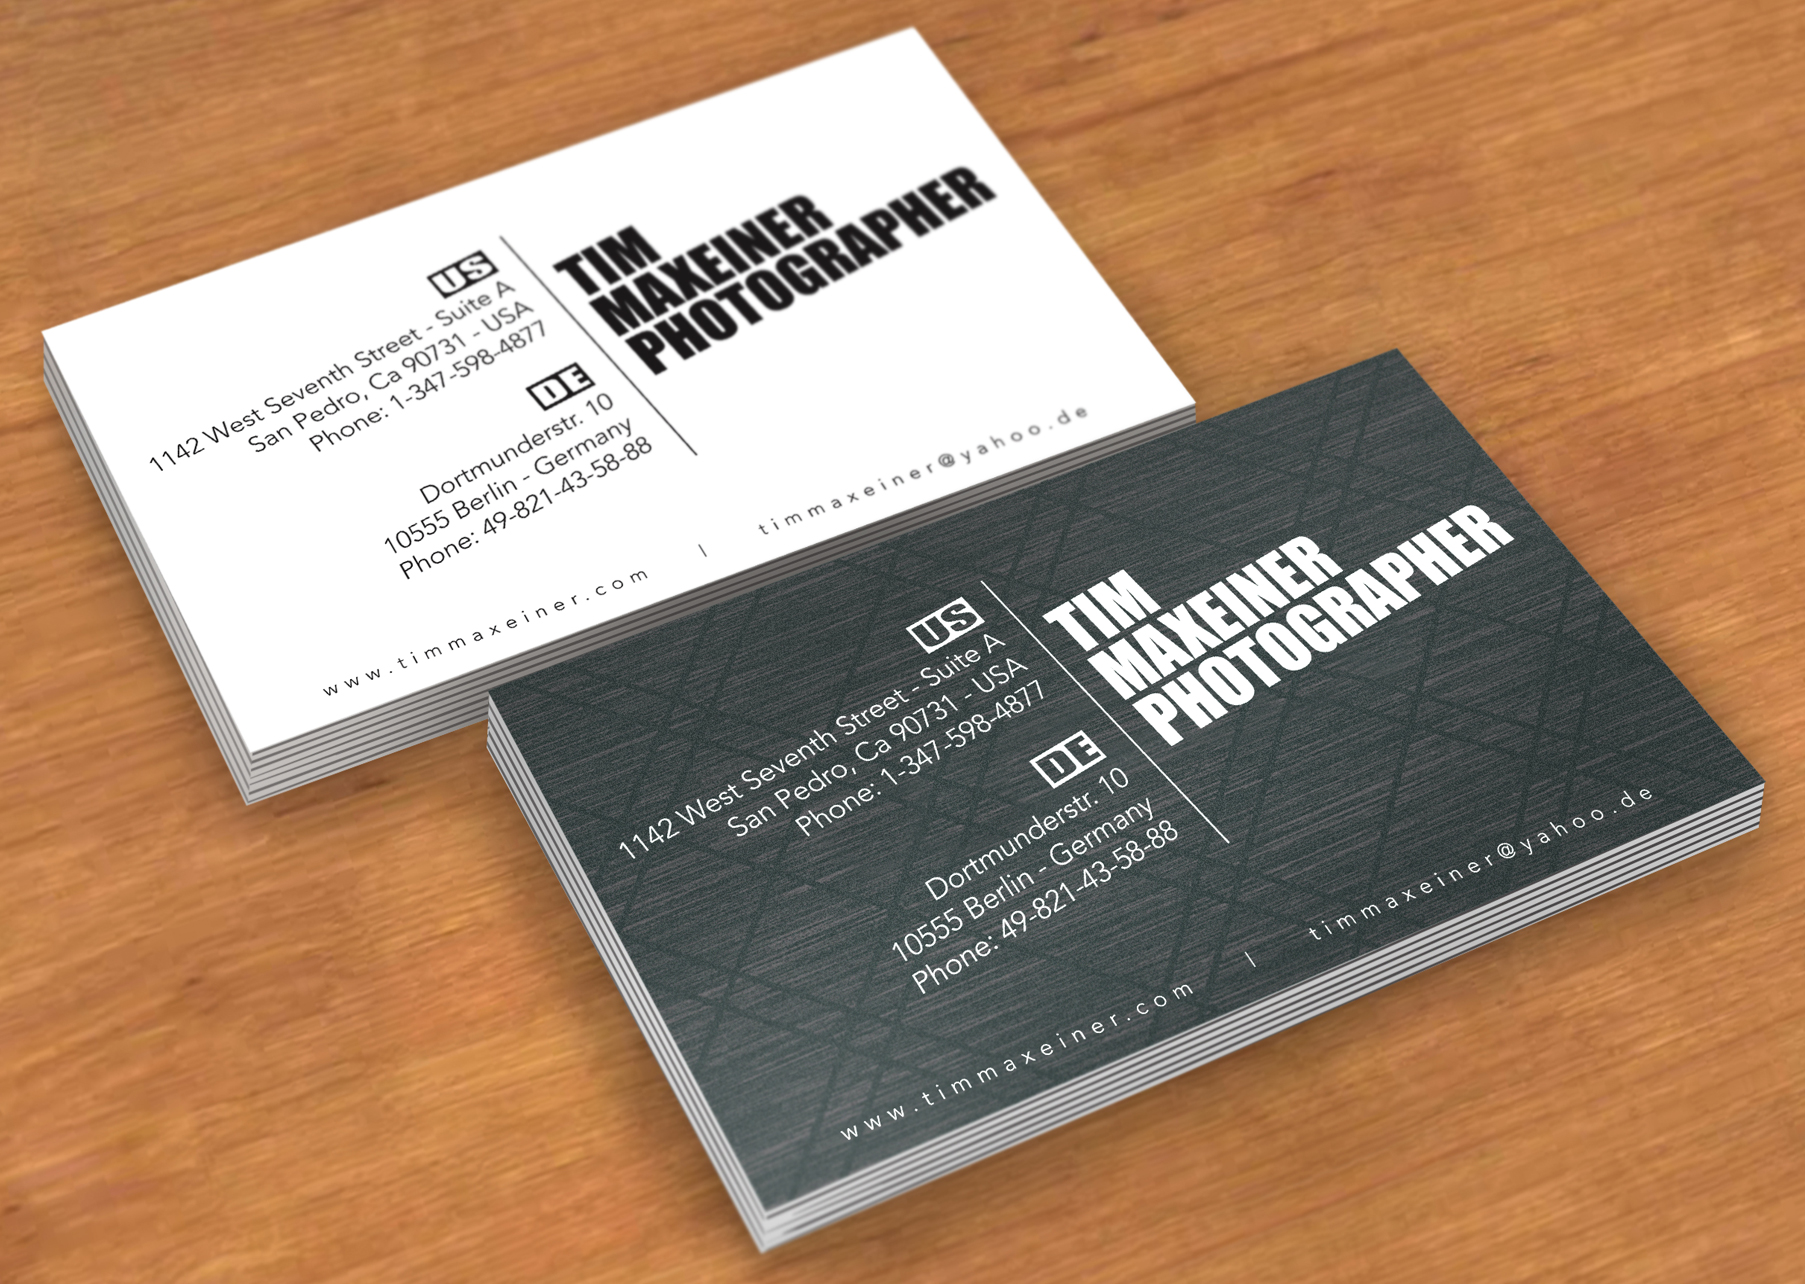 Business cards p charles fisher design studios tim maxeiner photographer san pedro ca berlin germany reheart Choice Image